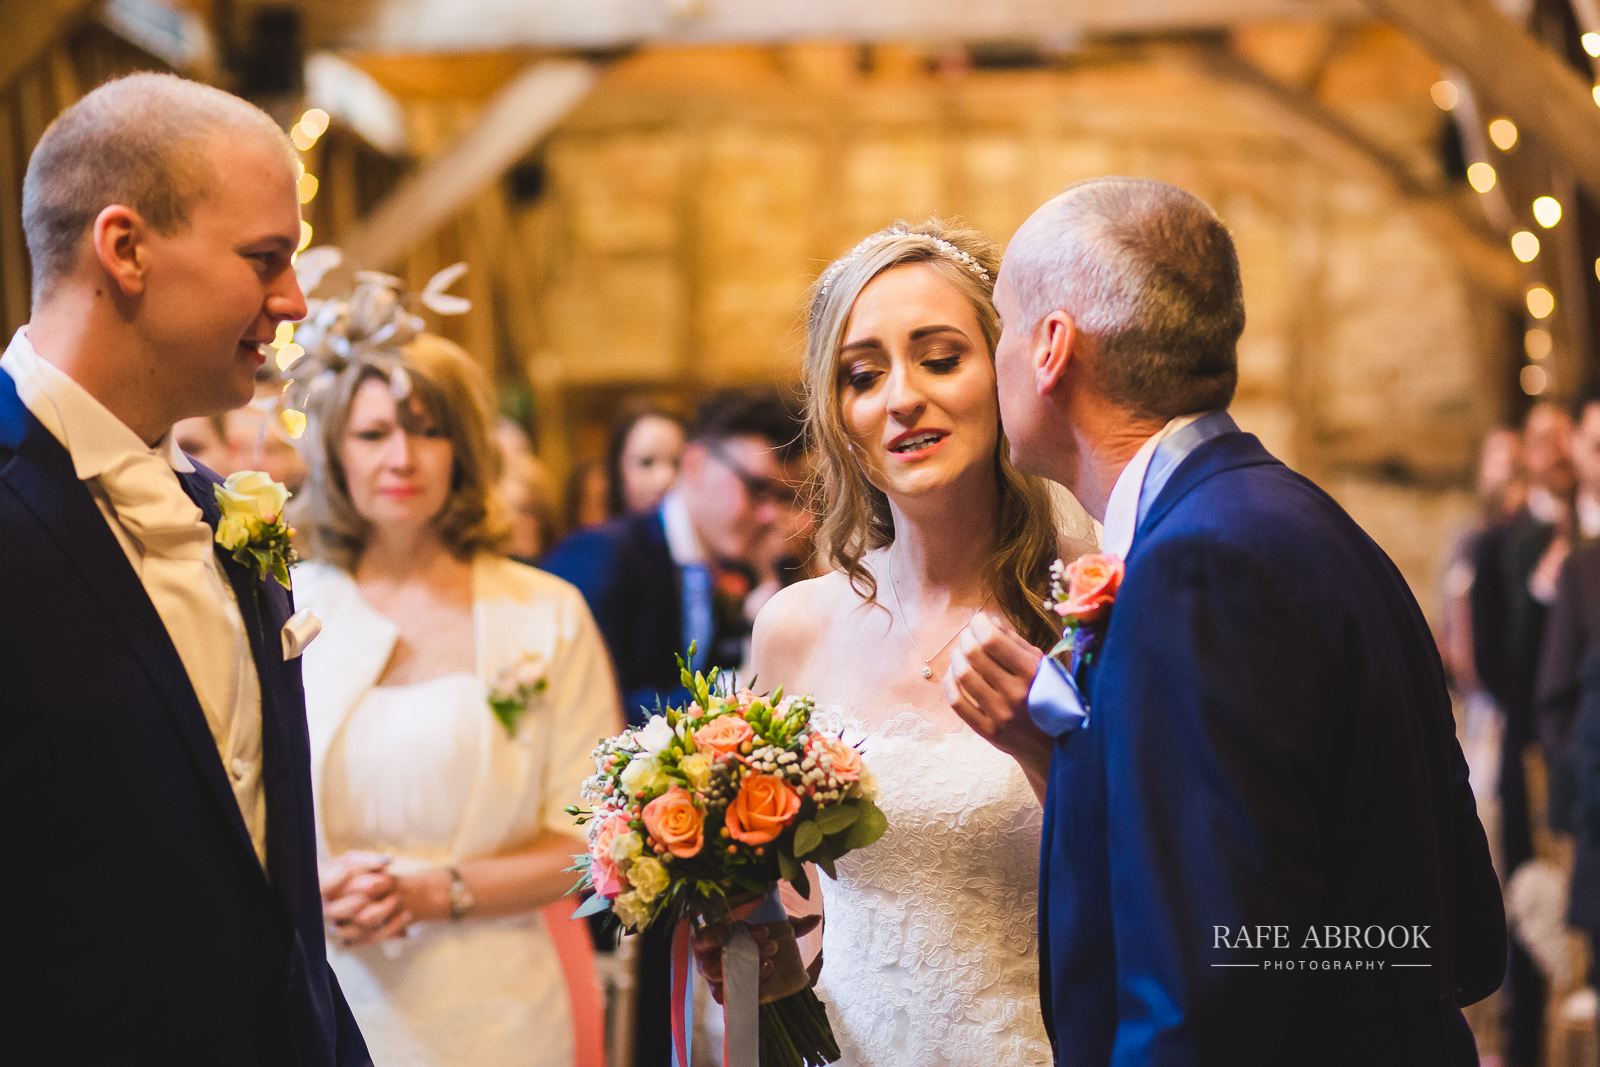 bassmead manor barns wedding st neots cambridgeshire hertfordshire wedding photographer rafe abrook-1335.jpg